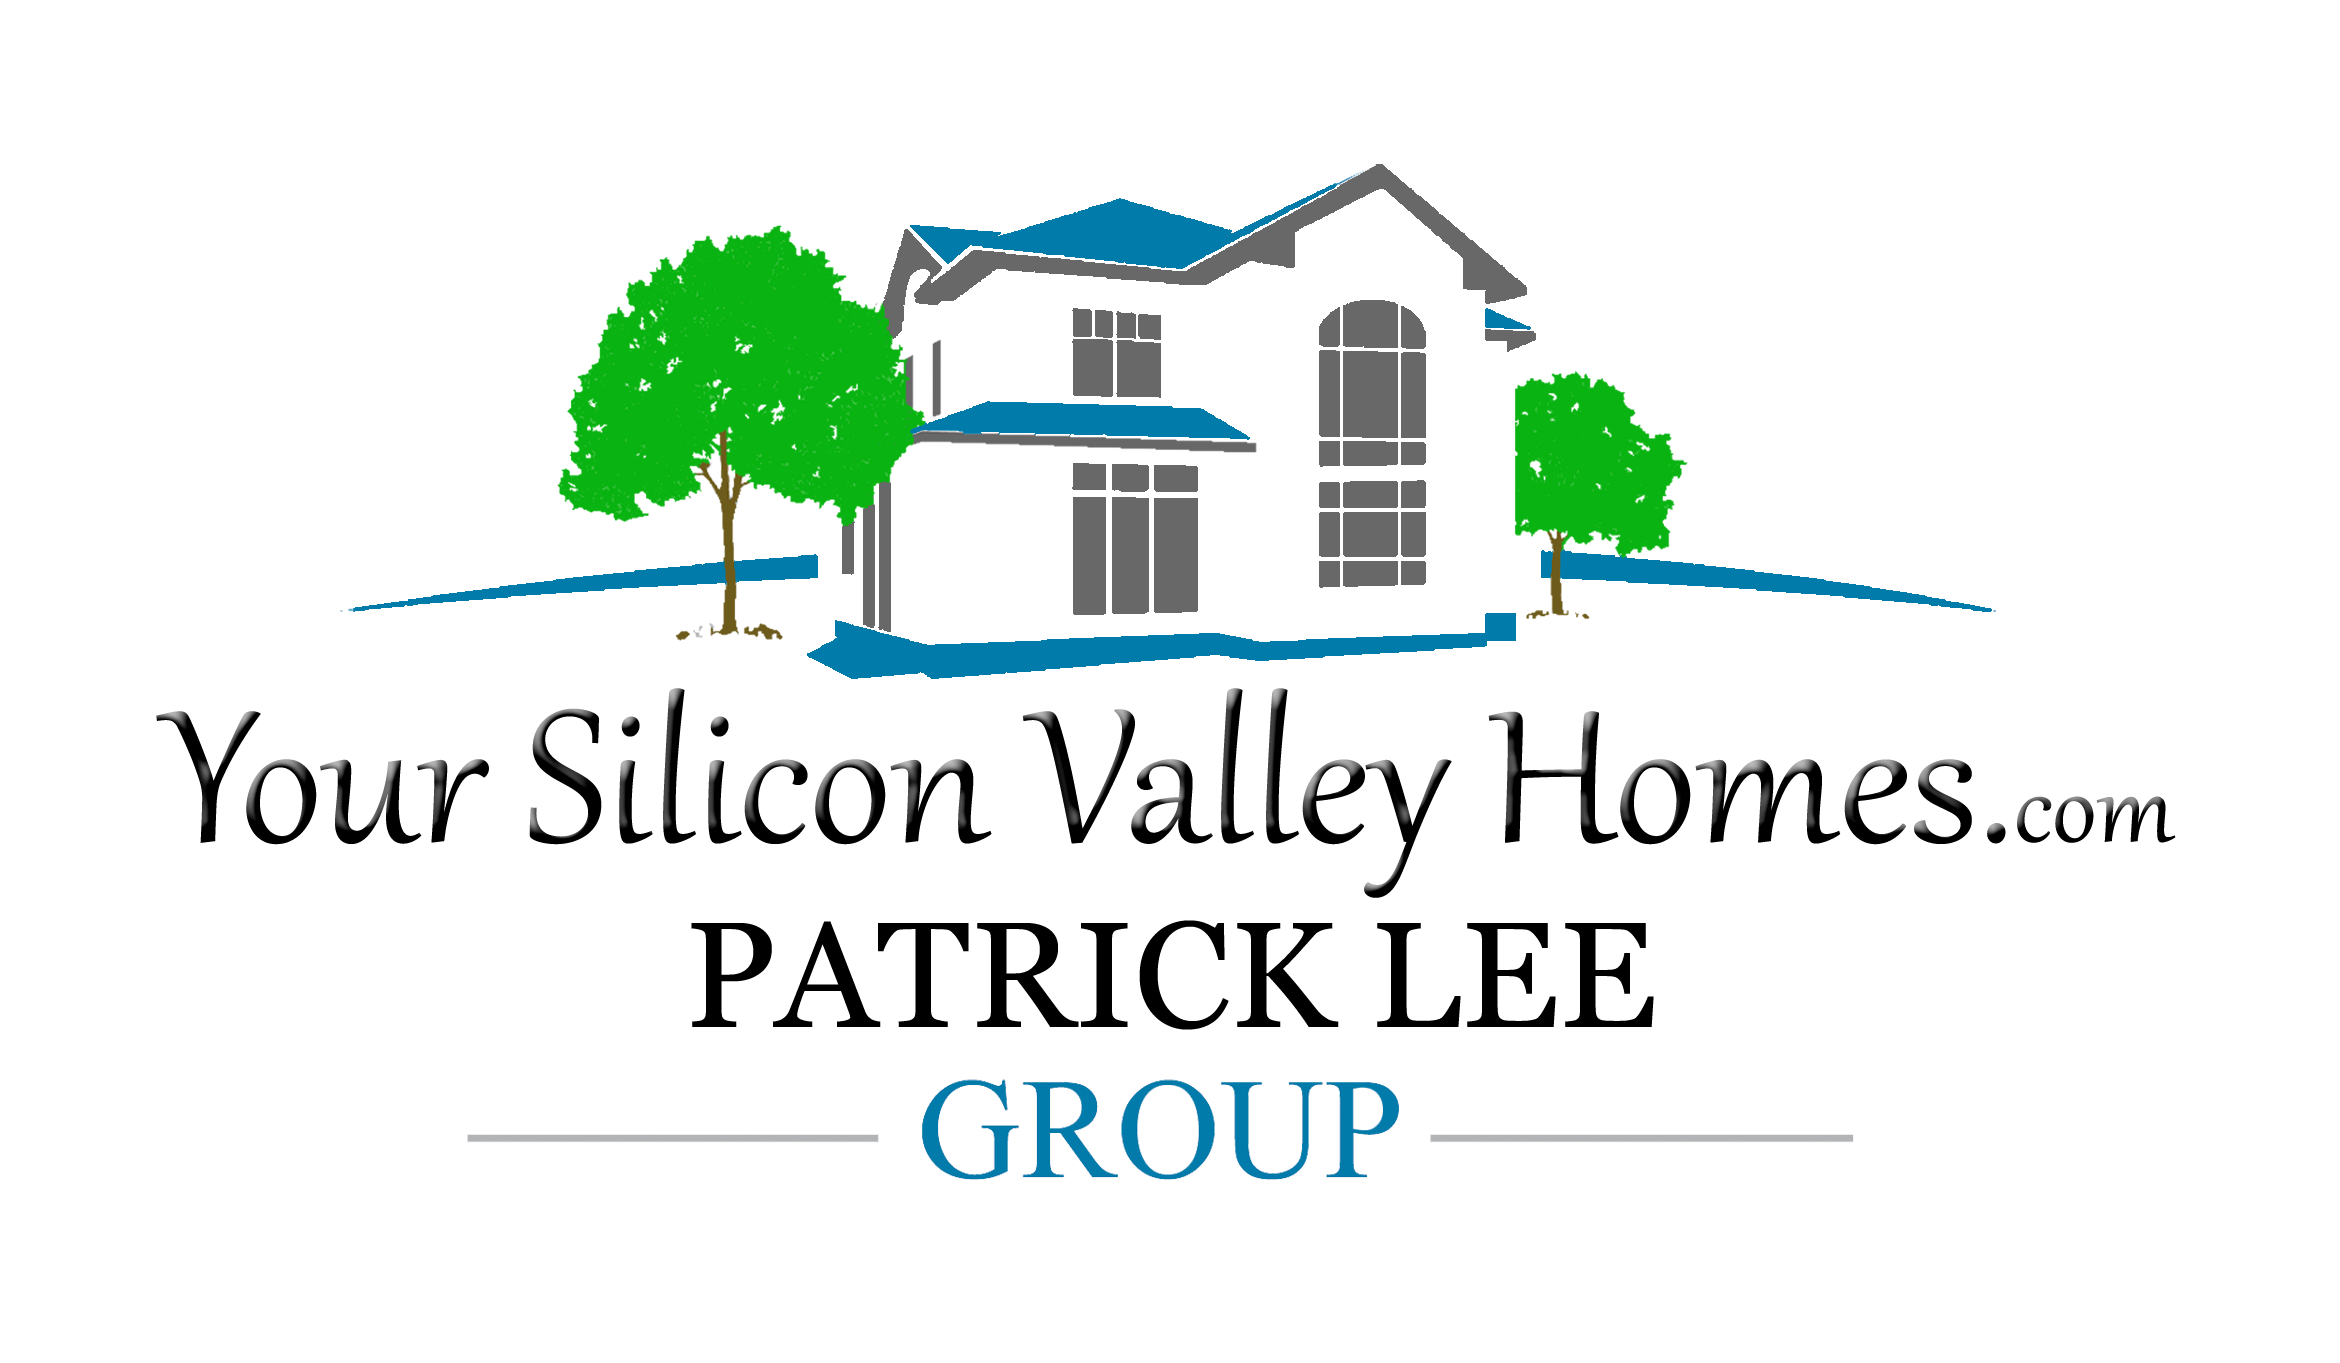 About Patrick Lee as a Realtor